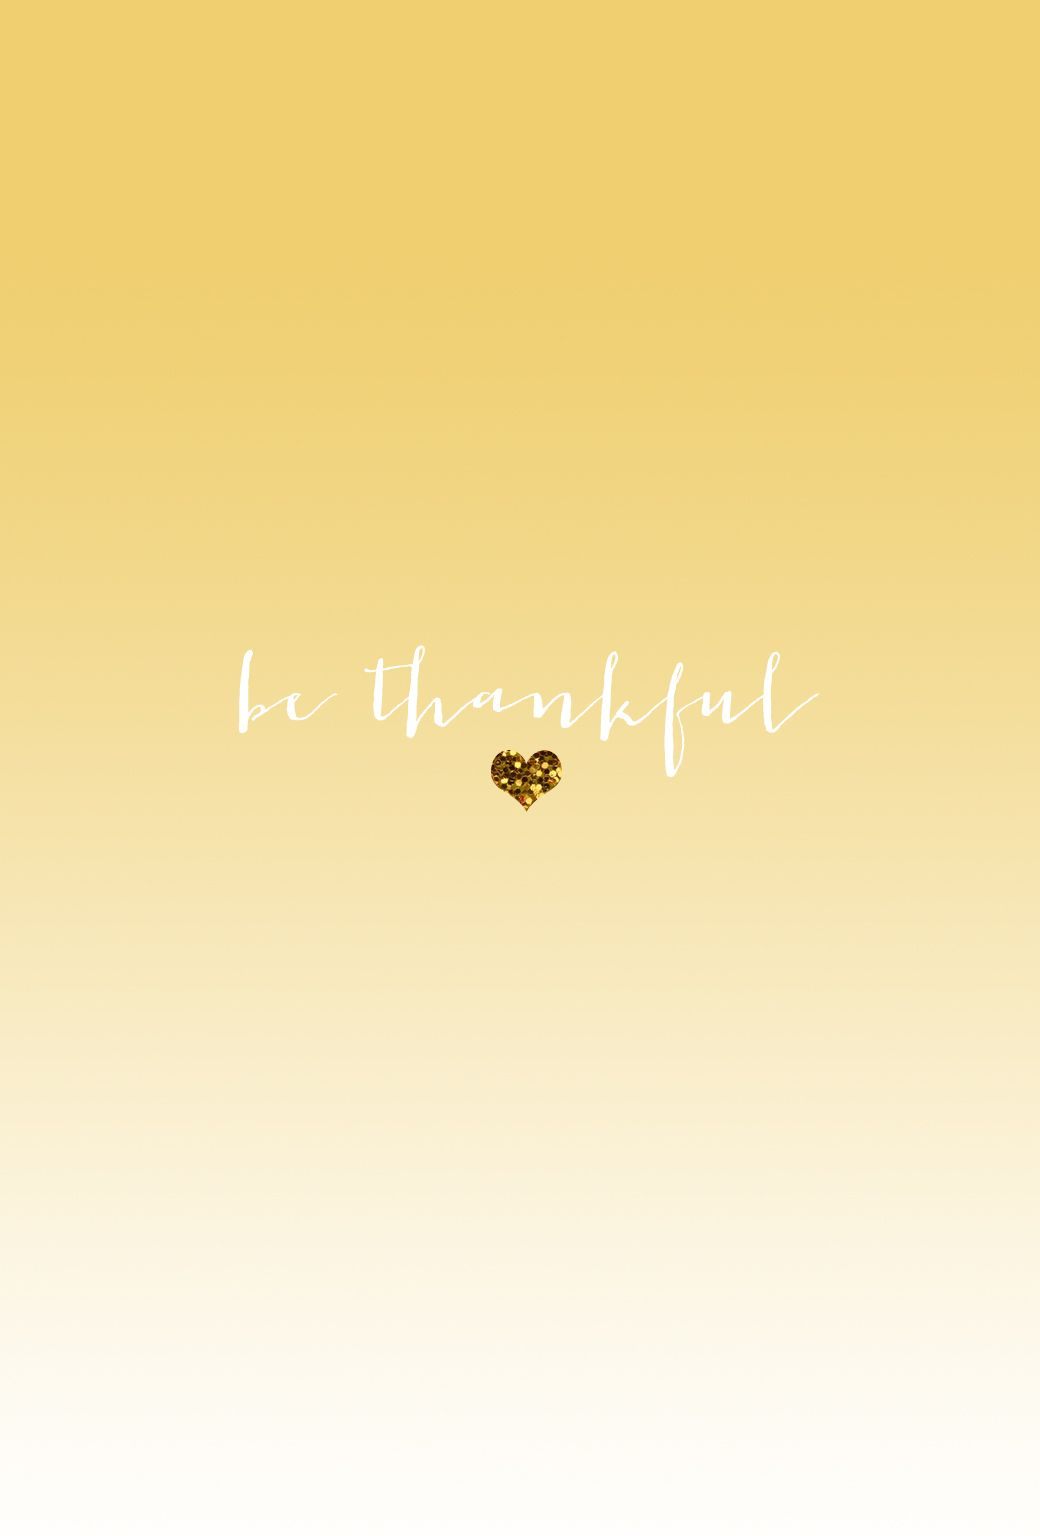 Pastel Yellow Ombre Mini Gld Heart Be Thankful Iphone Wallpaper Background  Phone Lockscreen